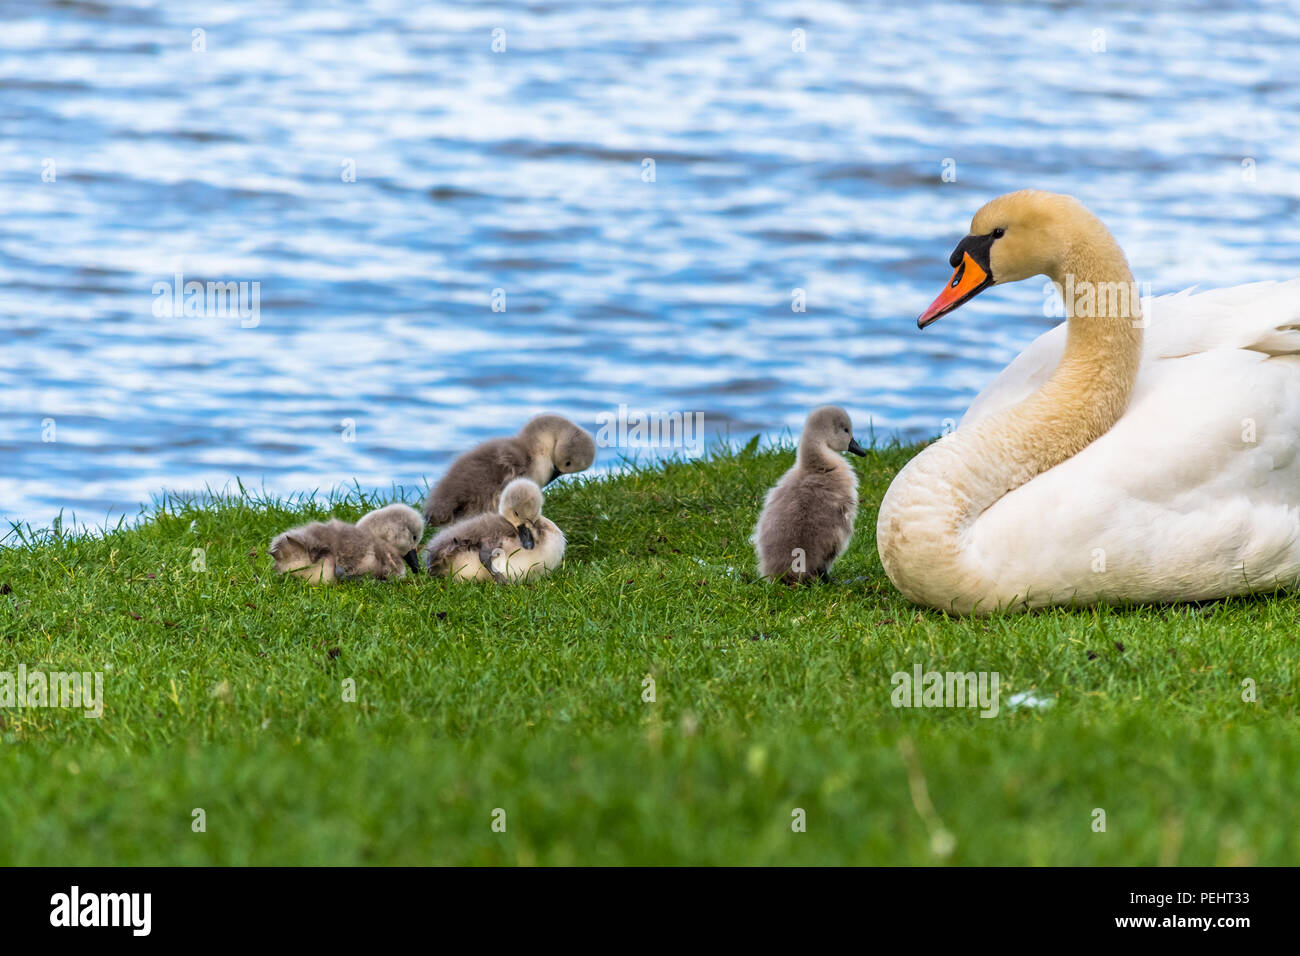 Beautiful young baby swans with their mother. Birds are about two weeks old, grey feathers, a very small and adorable animal. Birds are resting on a g Stock Photo